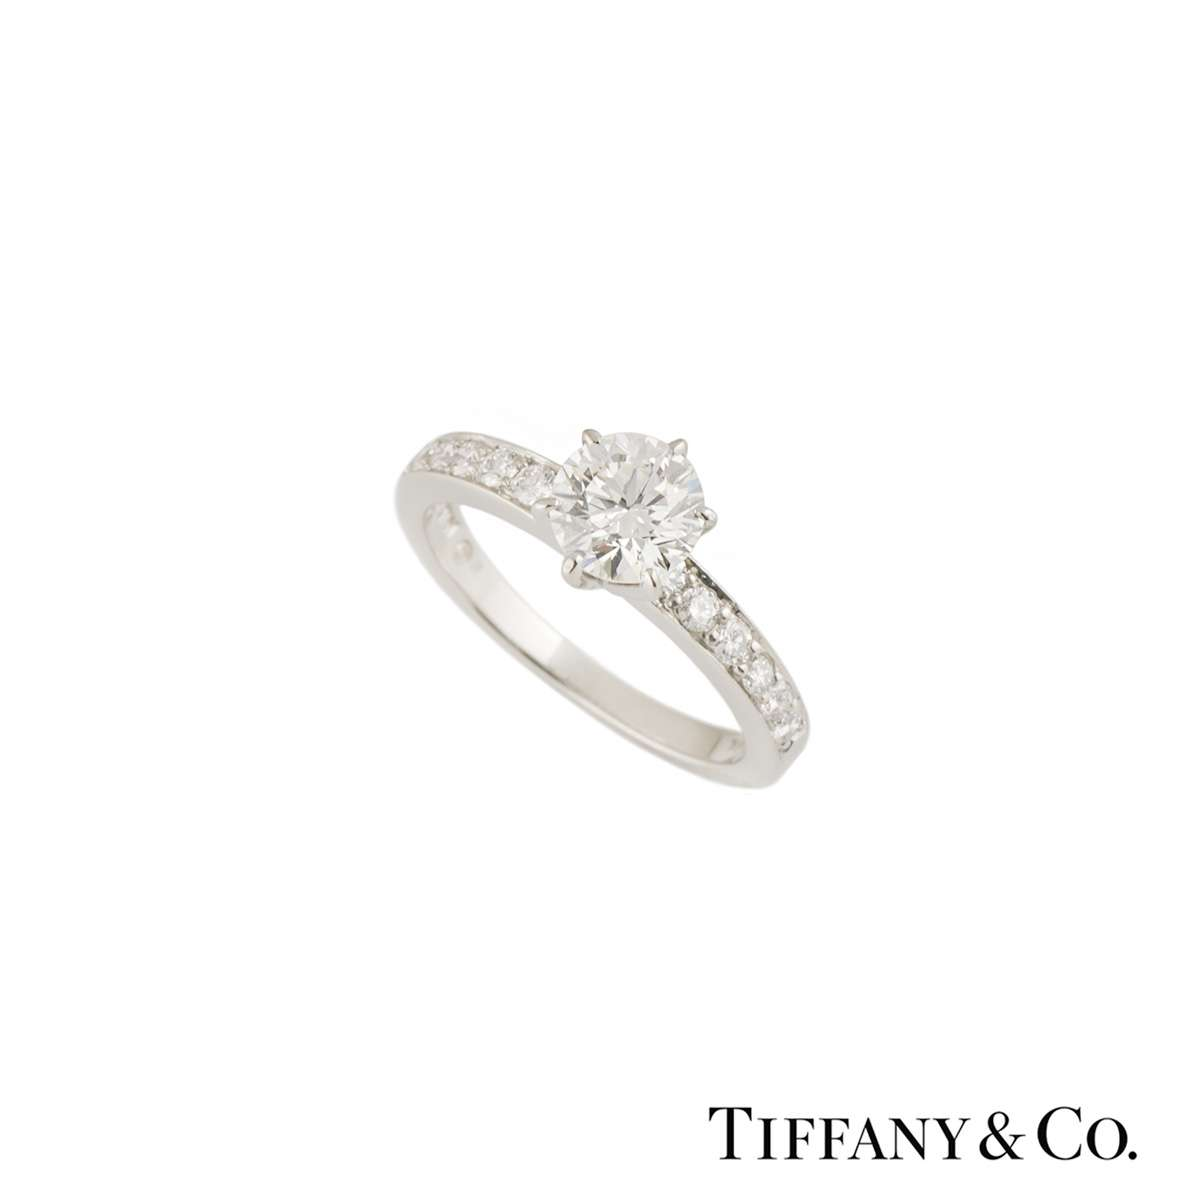 Tiffany & Co. The Tiffany Setting with Diamond Band Ring 0.75ct F/VS1